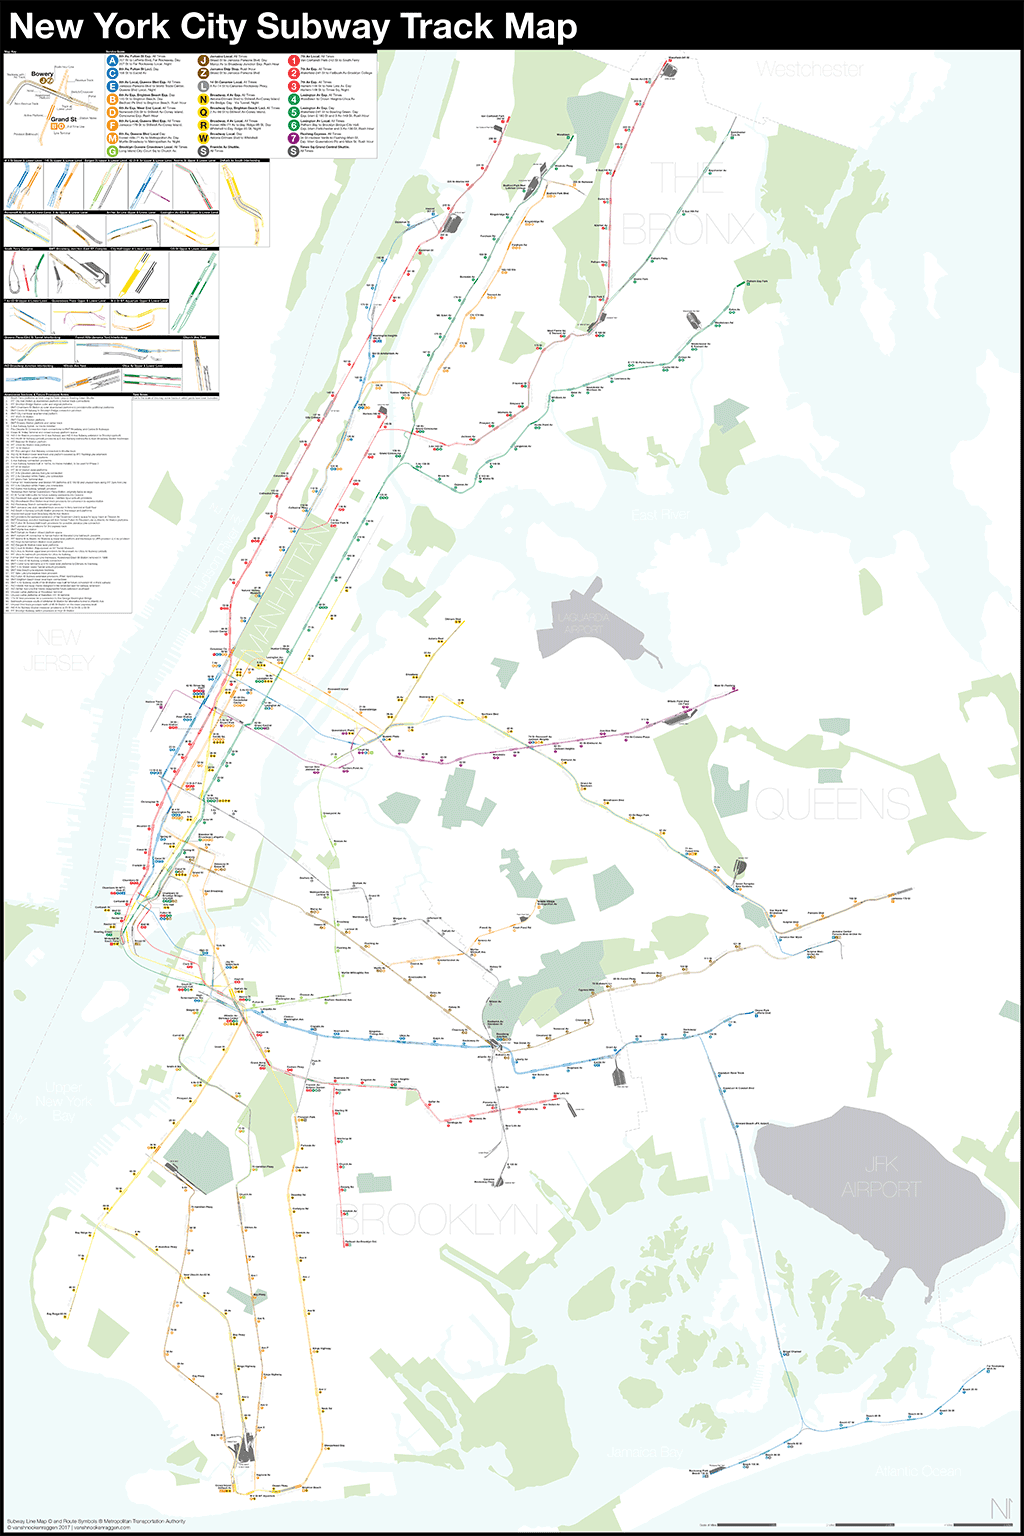 hight resolution of a complete and geographically accurate nyc subway track map click the image to download the pdf map